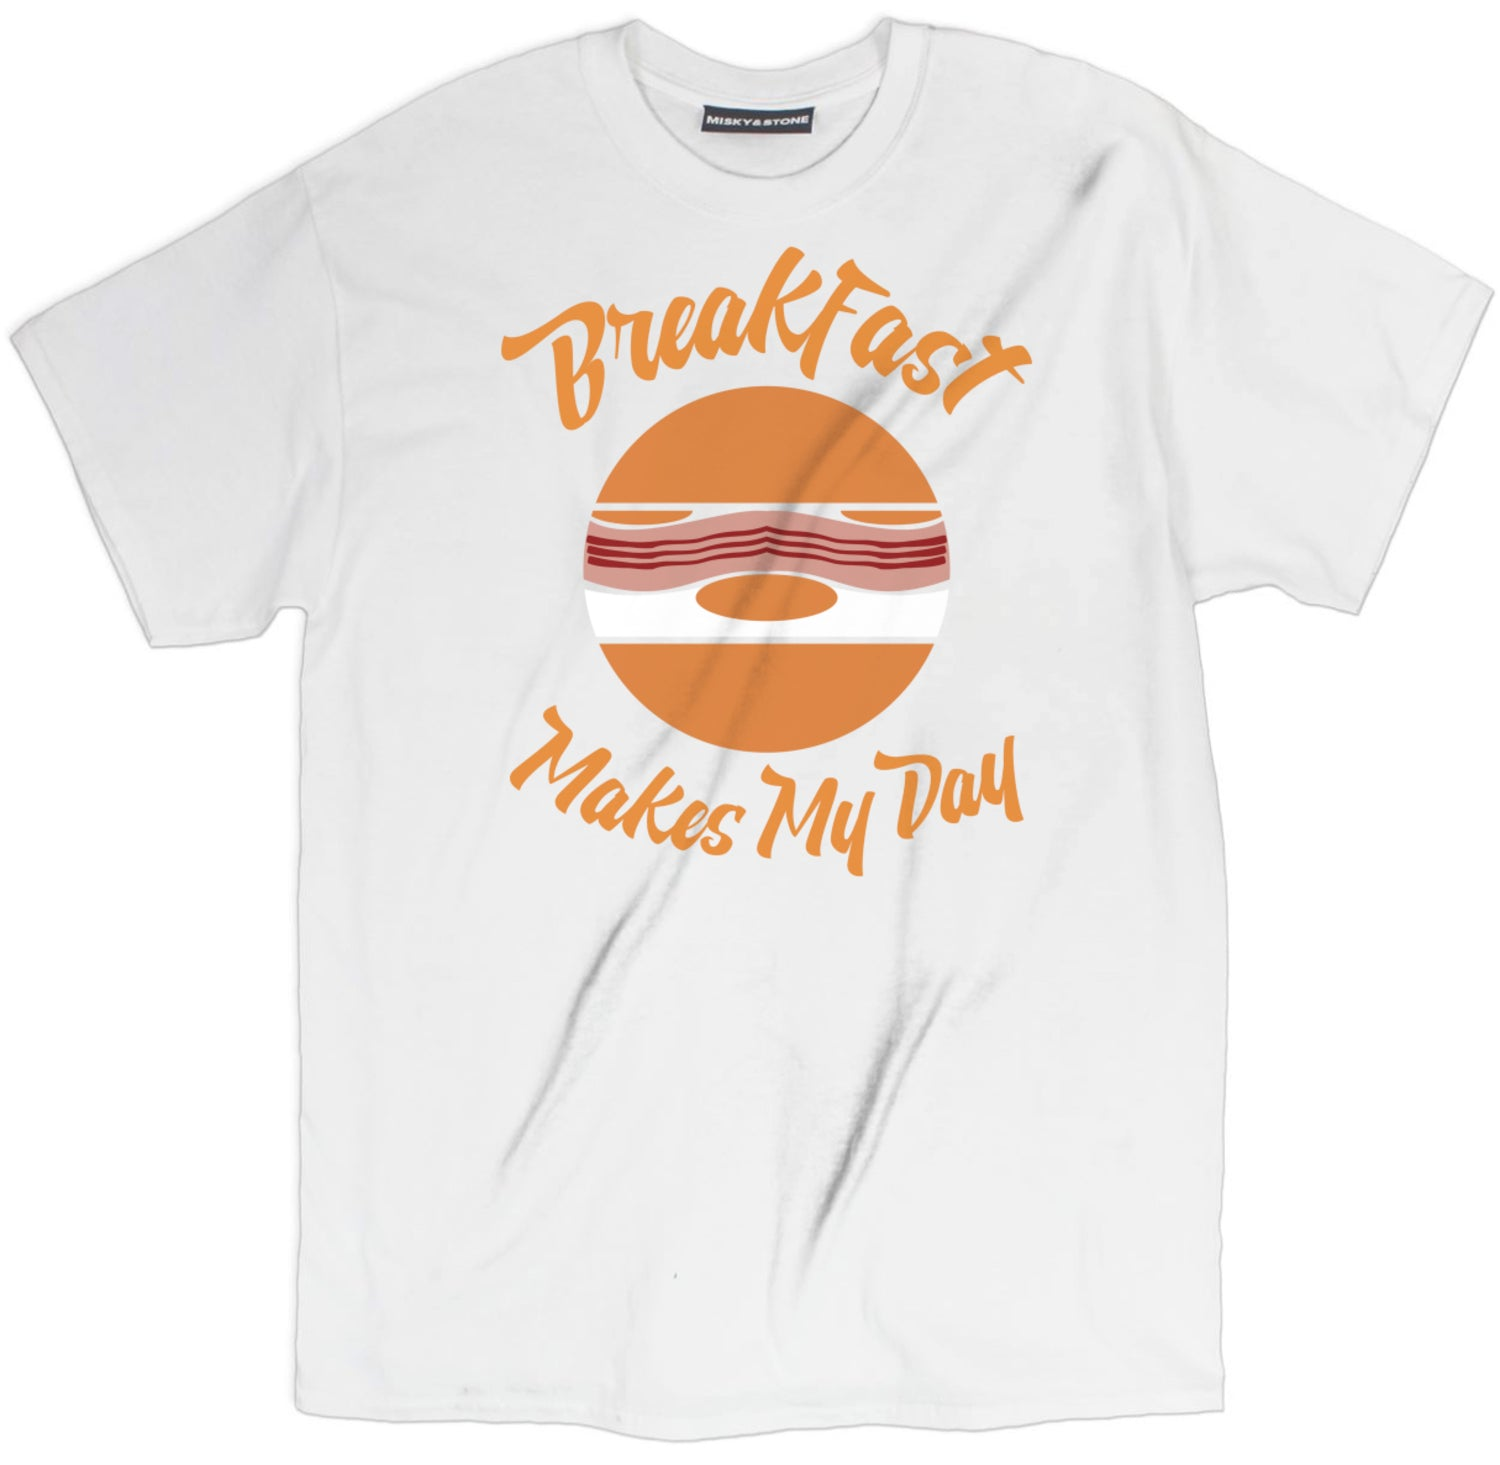 Breakfast Makes My Day Tee